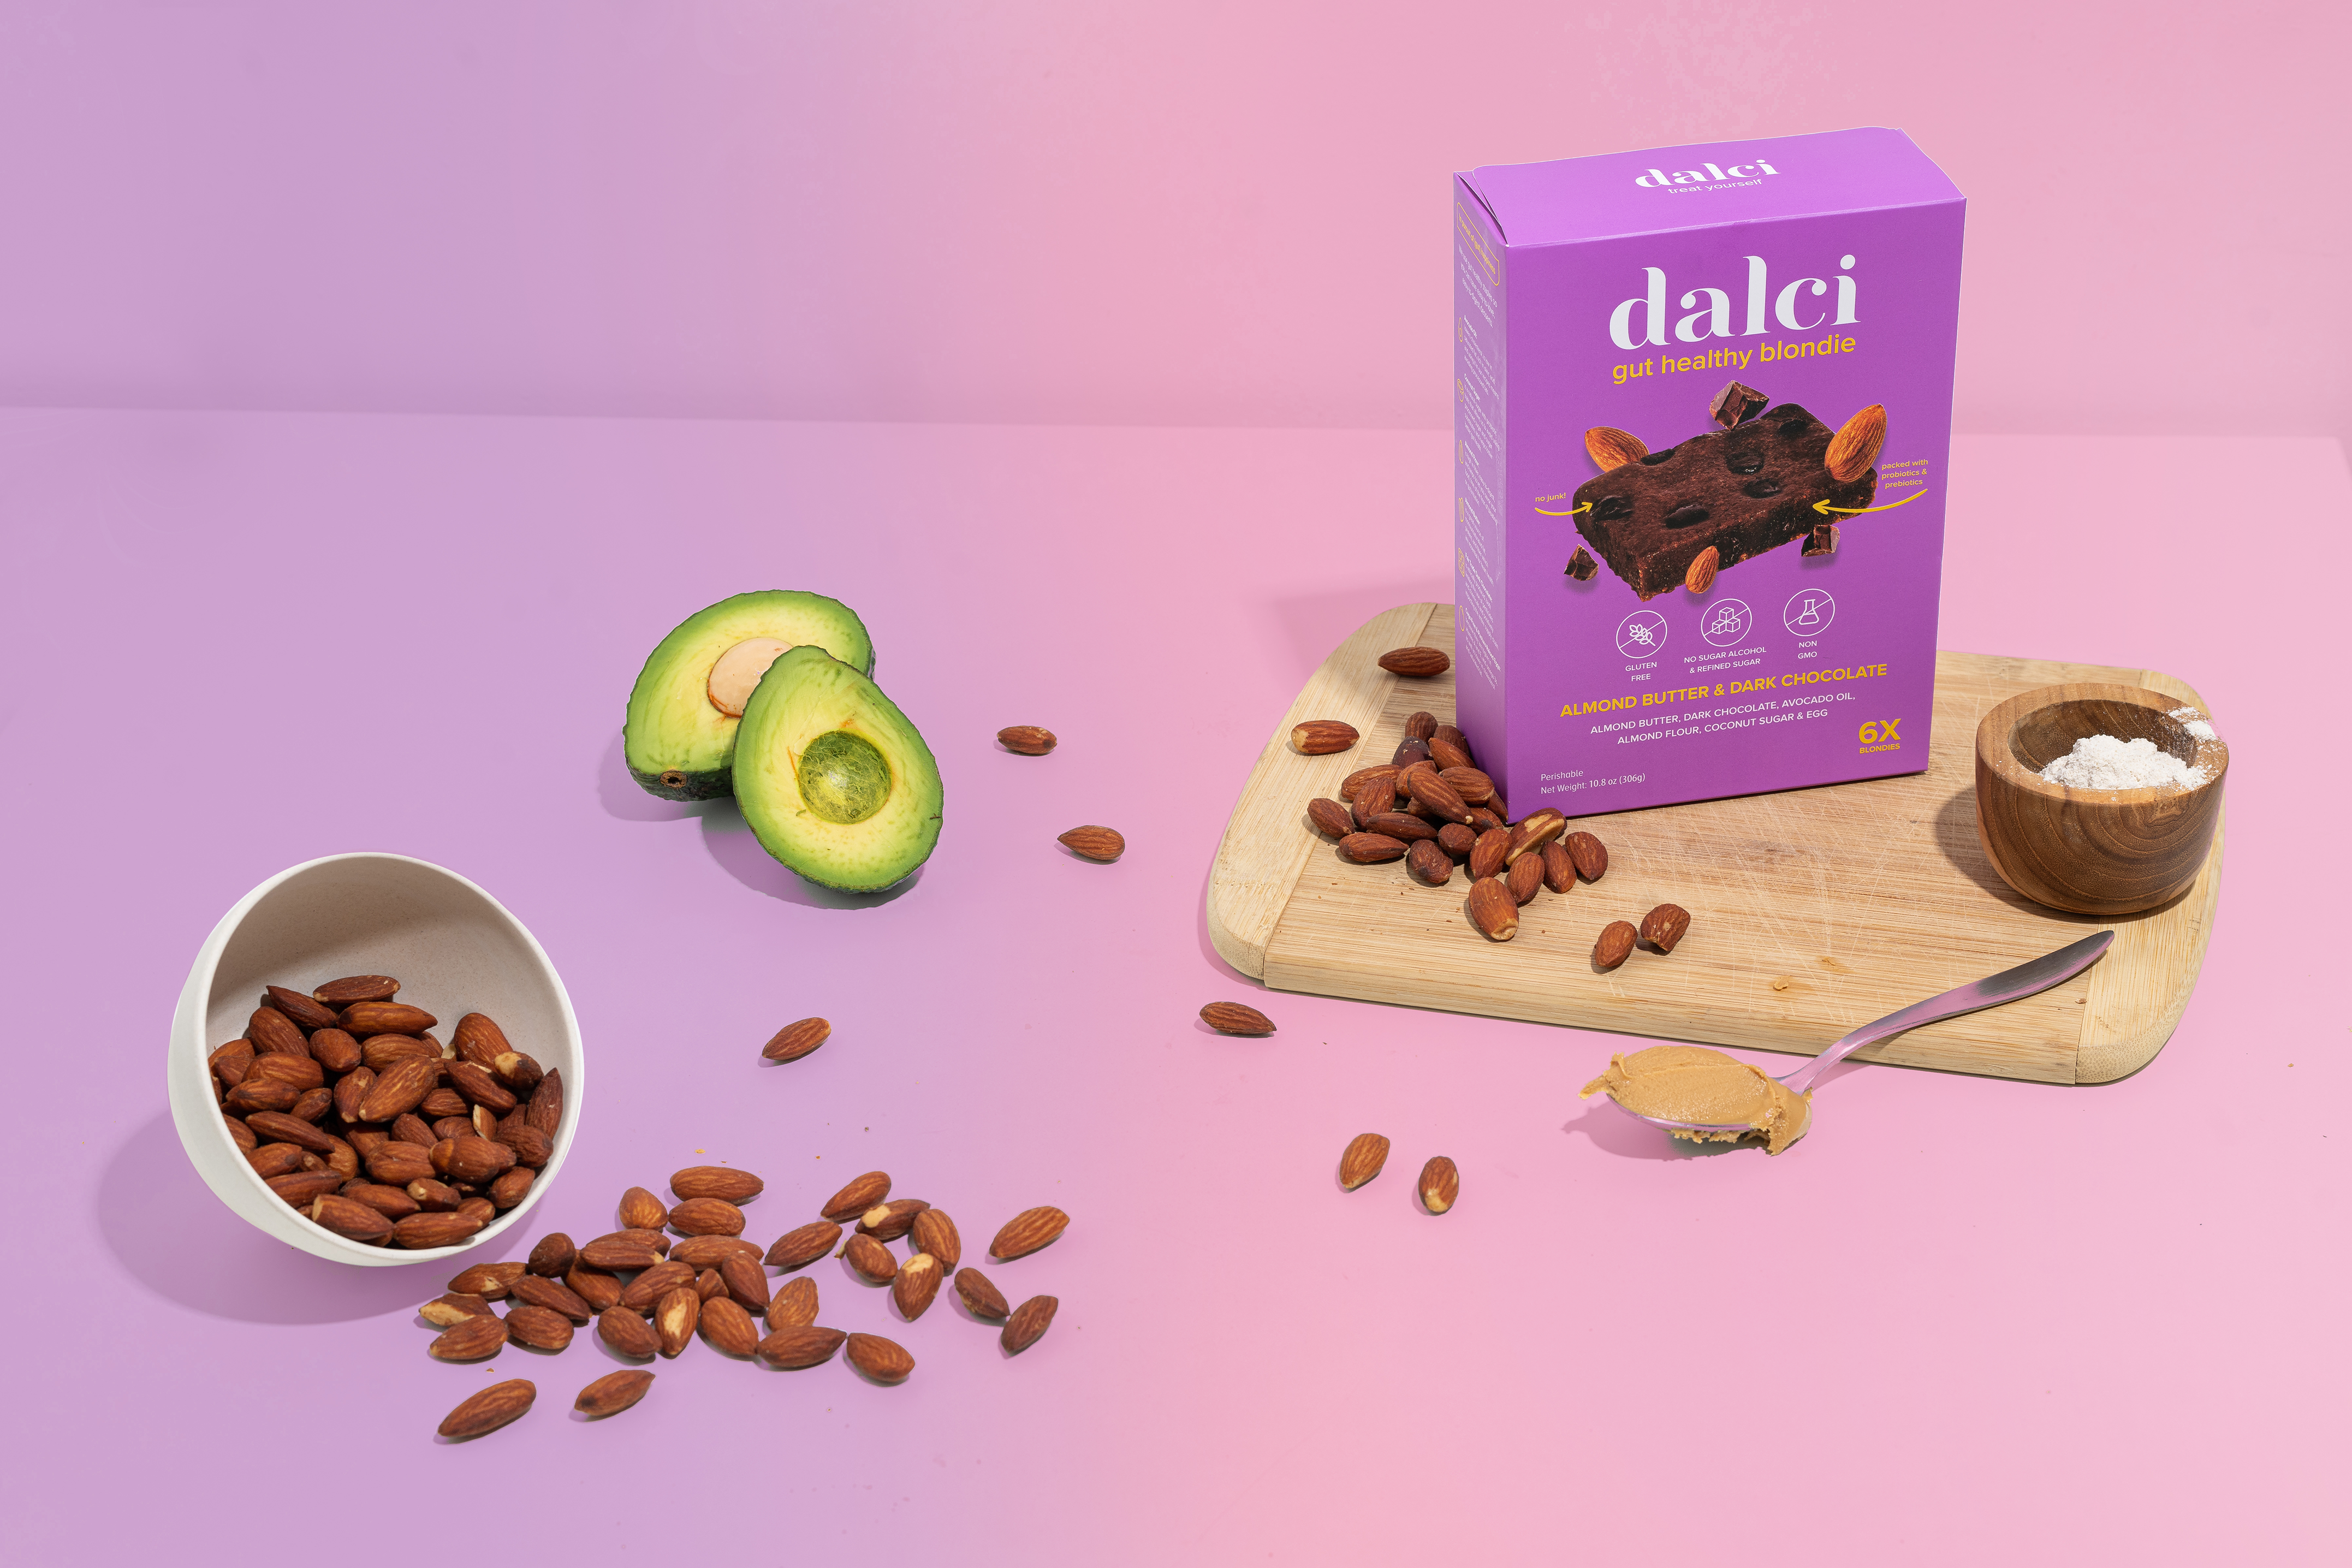 gluten-free, paleo approved, non-gmo brownies